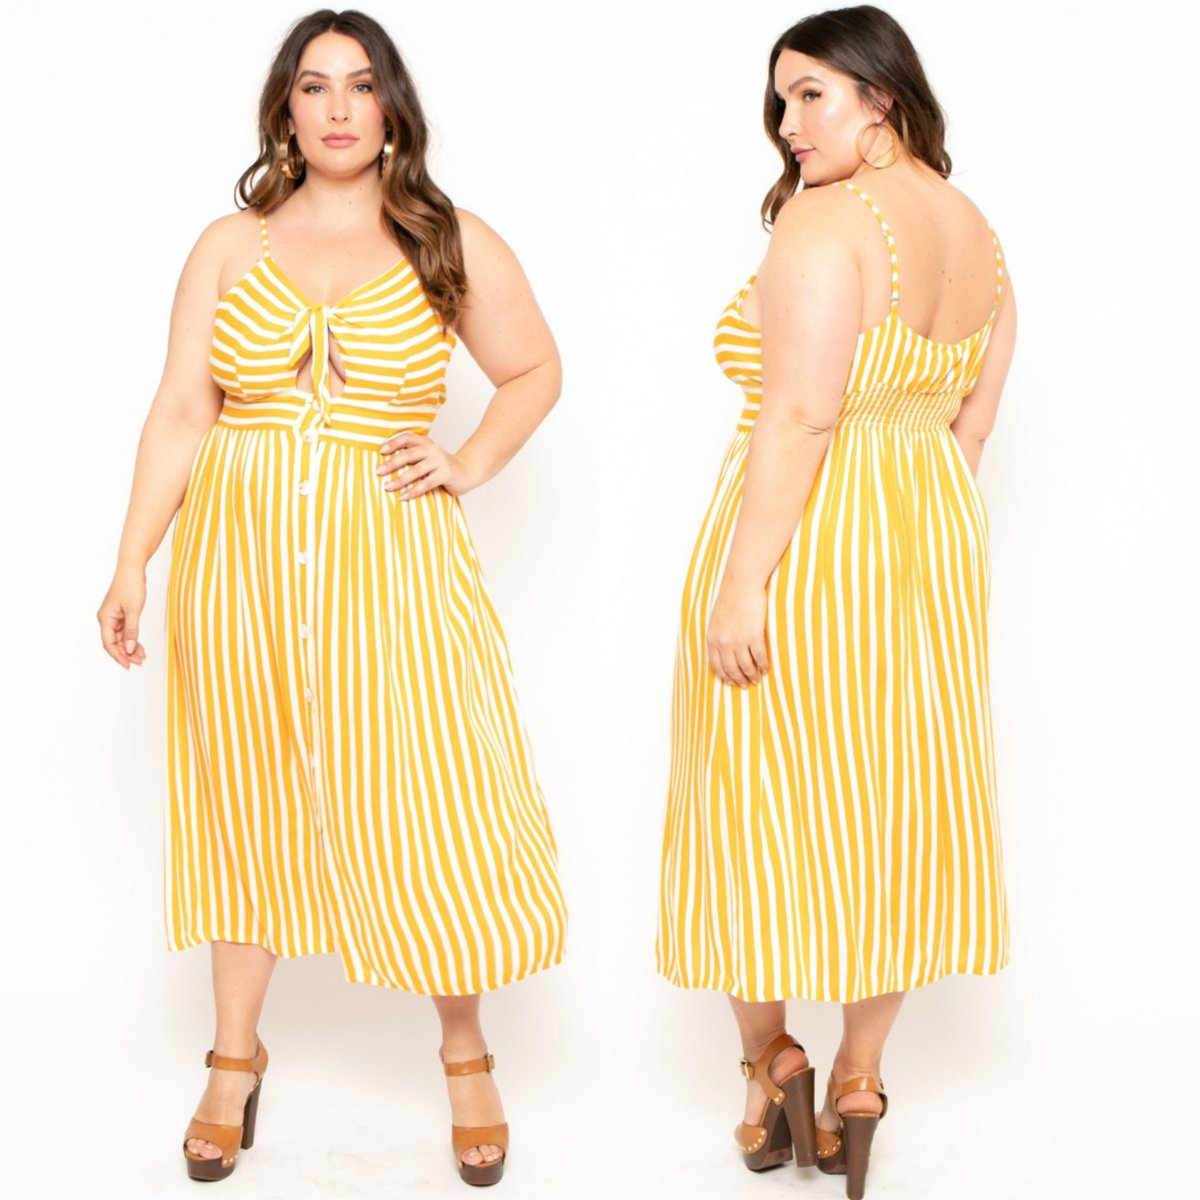 8126049f9fe Shop this style on http   CurvySense.com with code  GRAM20 . .  curvysense   plussize  psfashion  psstyle  curvyfashion  honormycurves  celebratemysize  ...